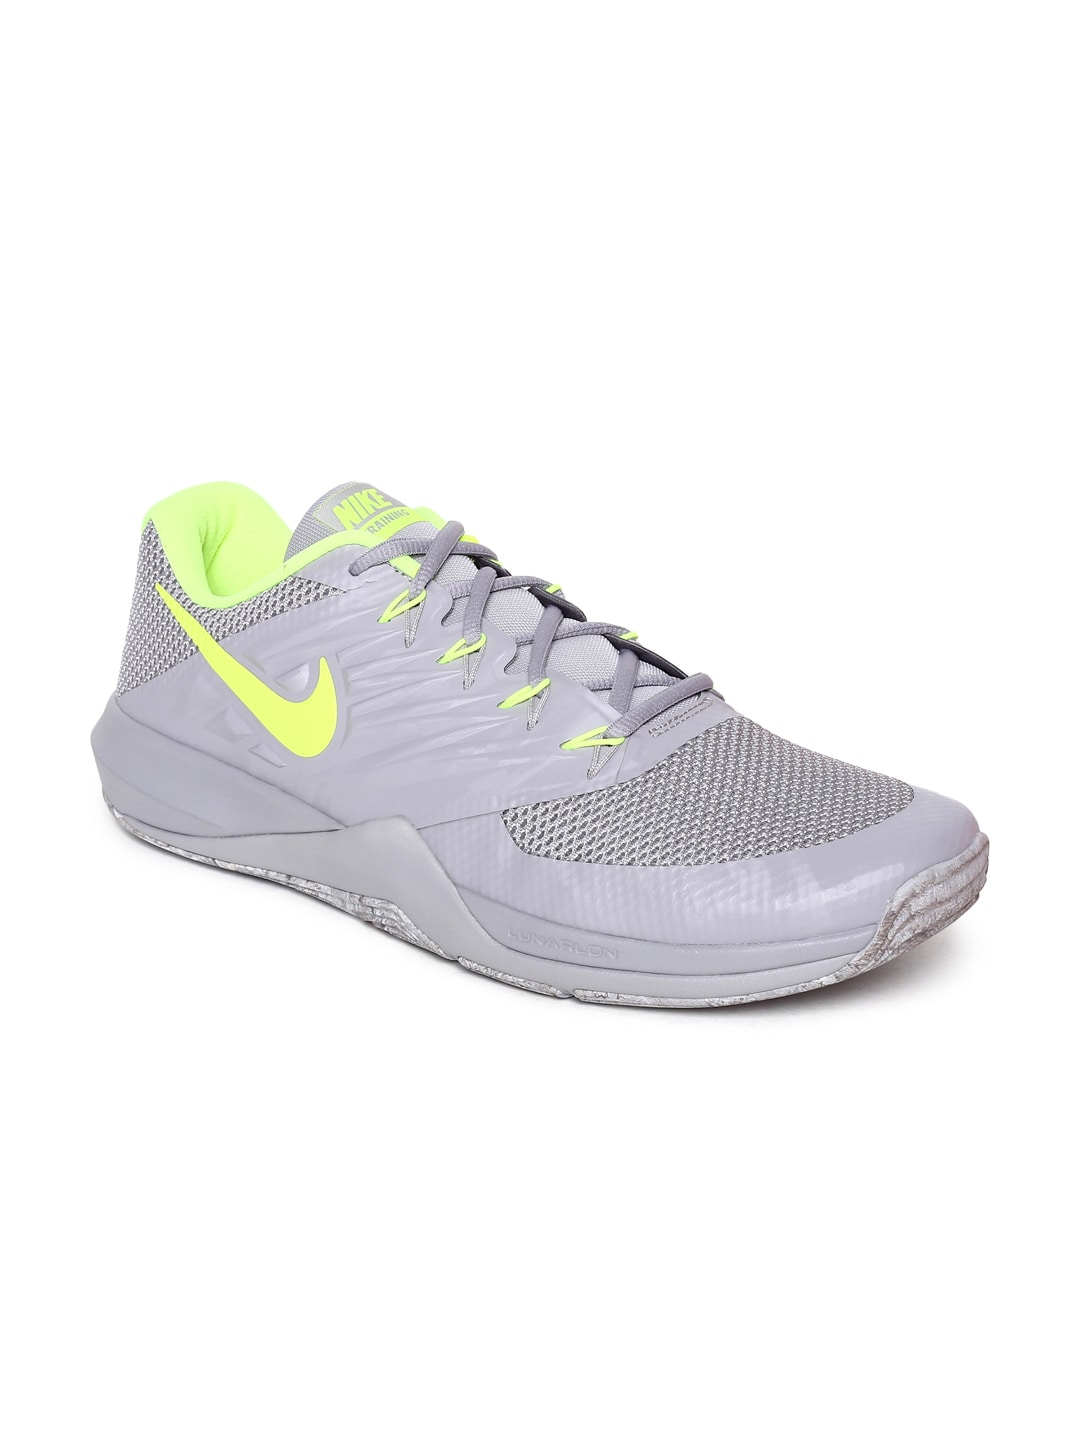 cheap for discount 45187 93f08 Nike Training Shoes - Buy Nike Training Shoes For Men   Women in India